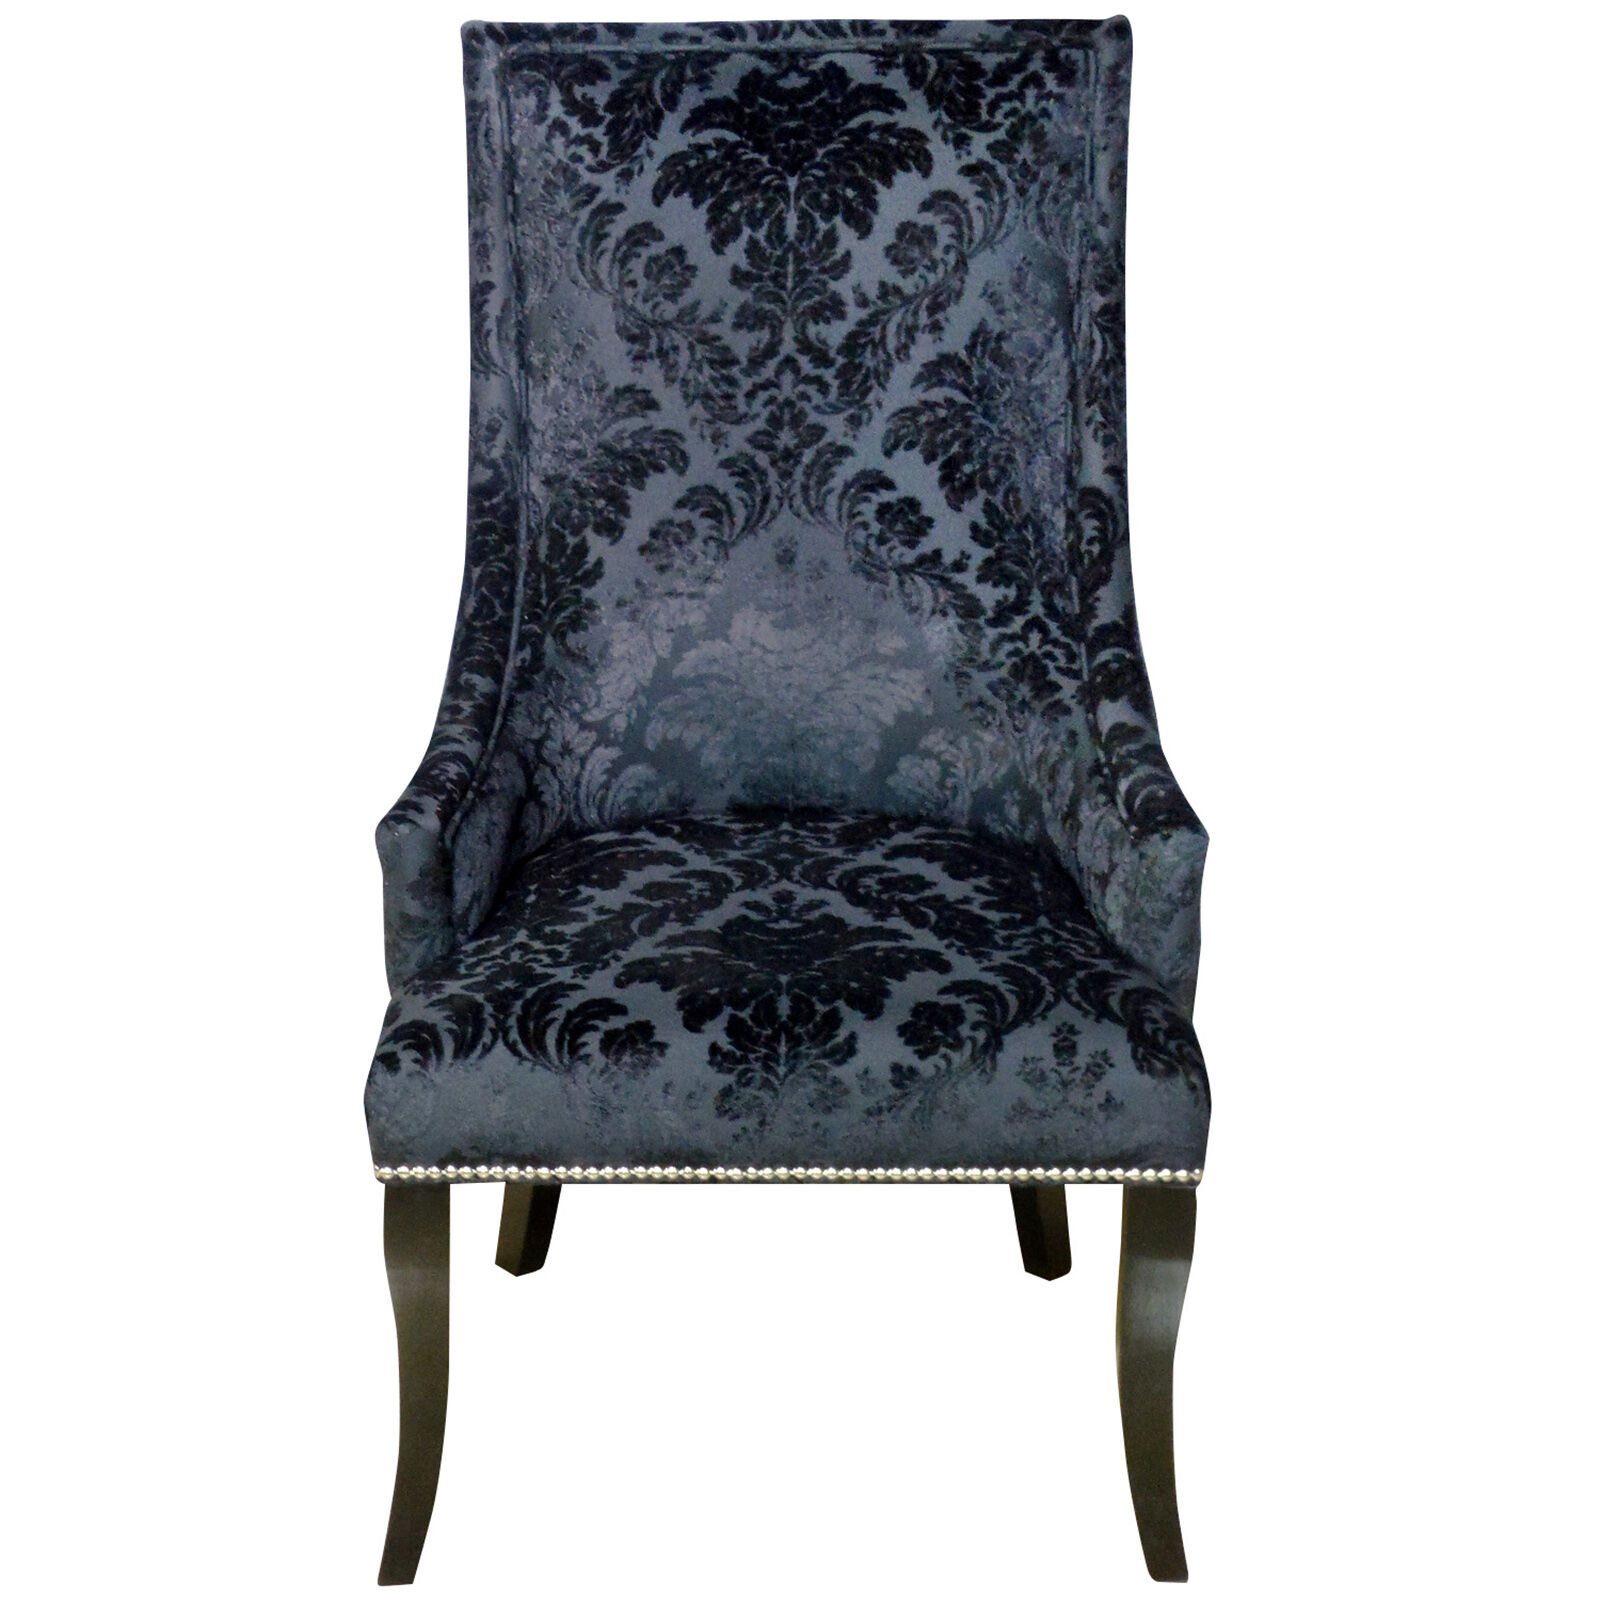 Damask Chair Chatham Accent Chair Black Velvet Damask At Home